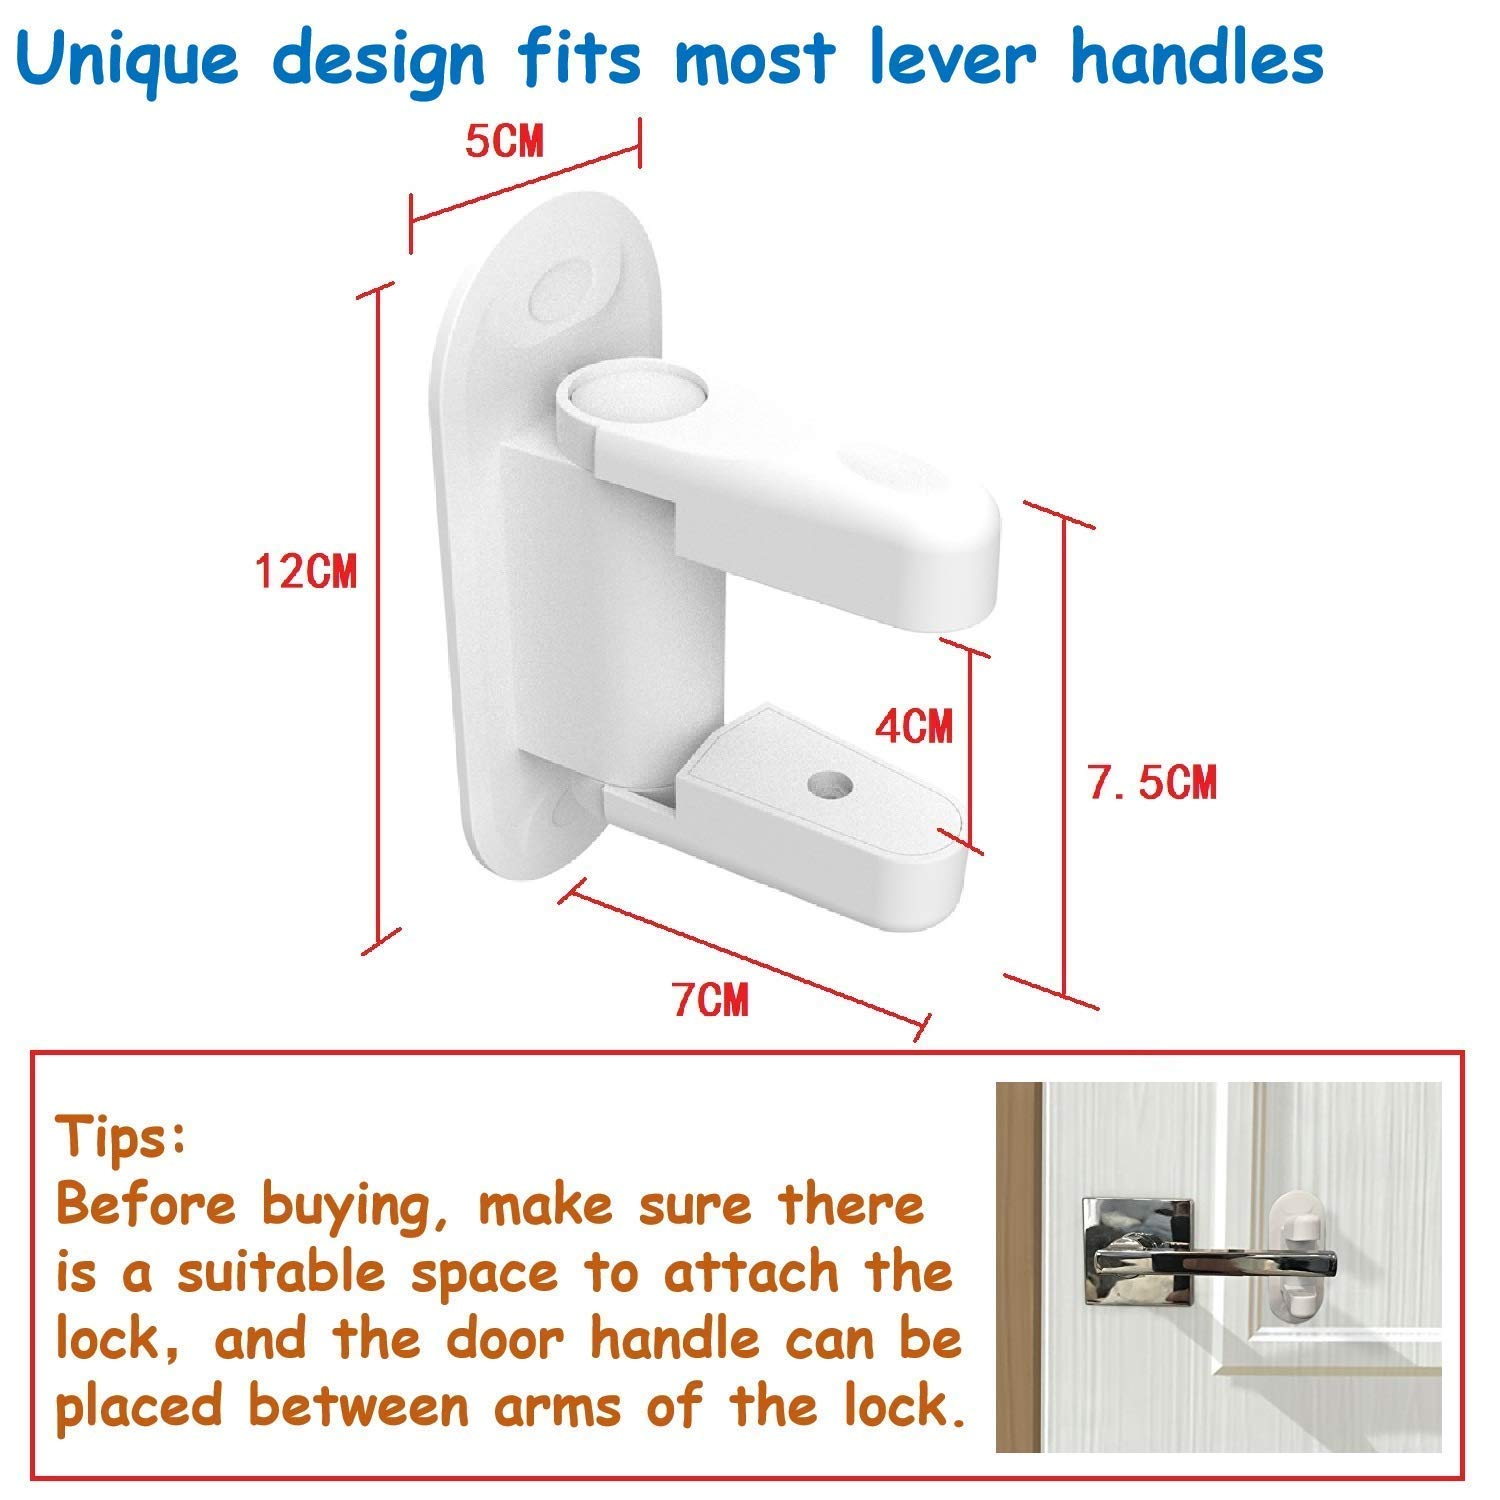 Door Lever Lock,Child Proof Door Handle Lock 3M Adhesive - Child Safety